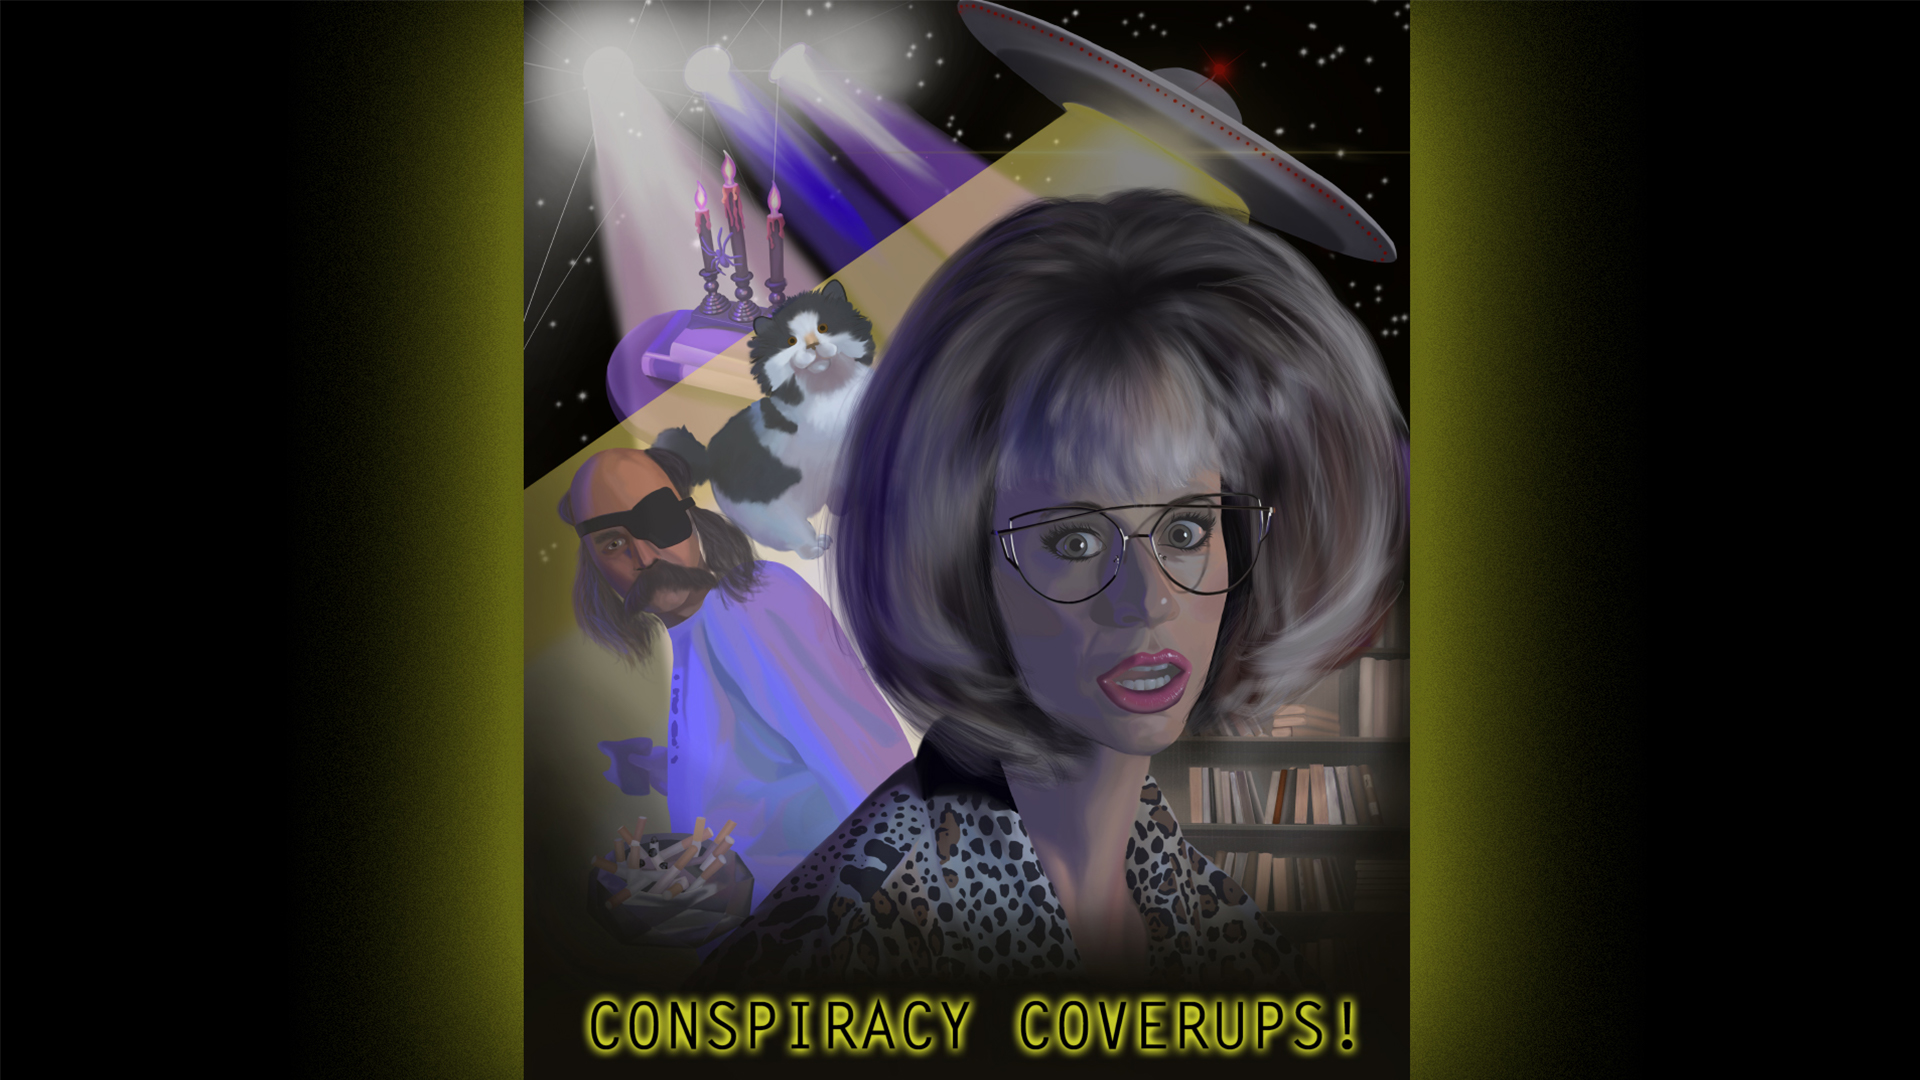 Conspiracy Coverups!